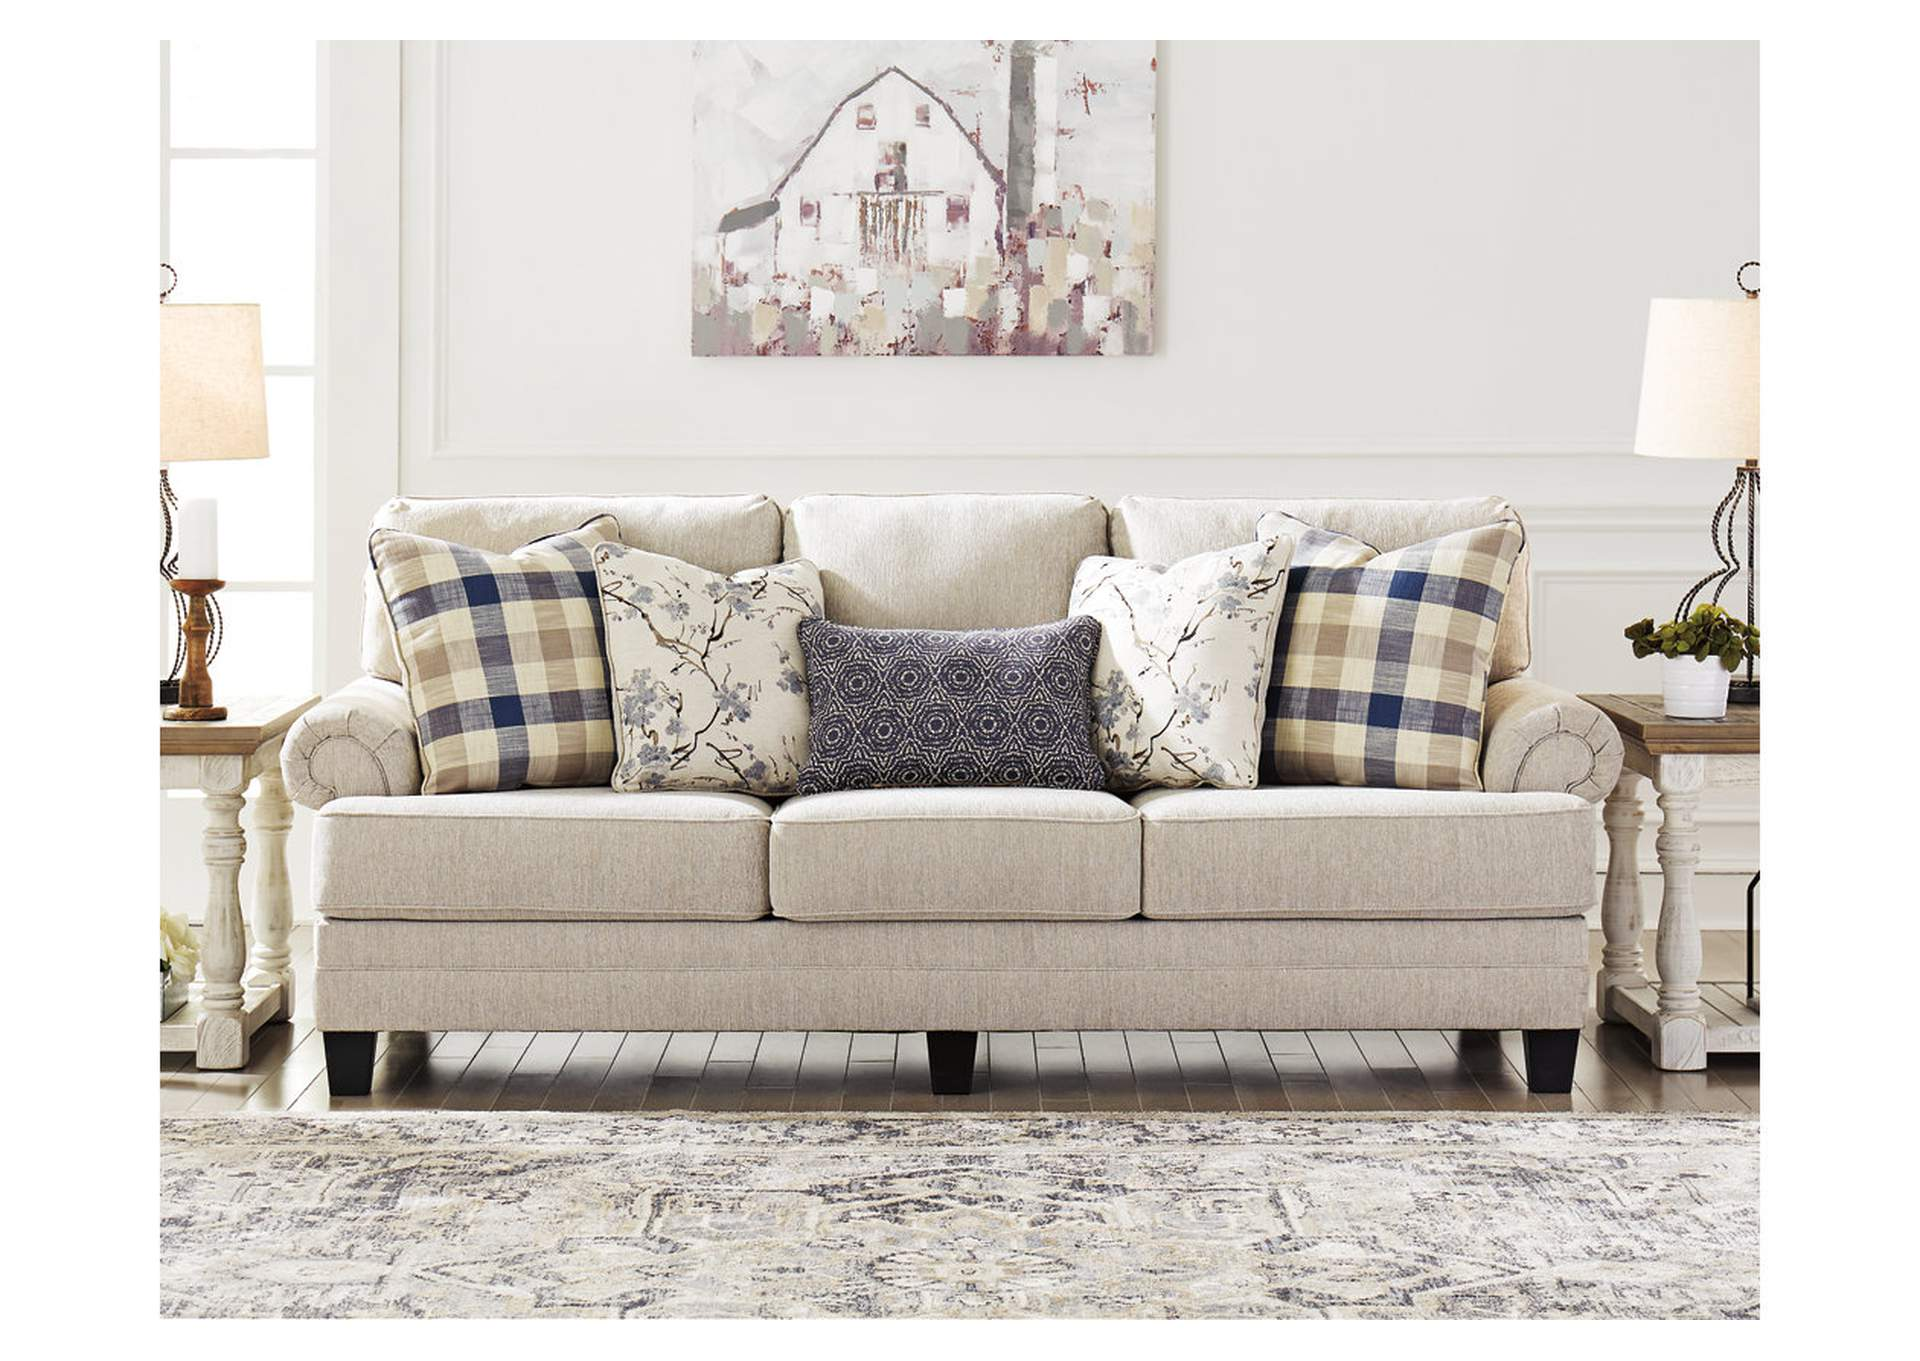 Meggett Linen Queen Sofa Sleeper,Benchcraft